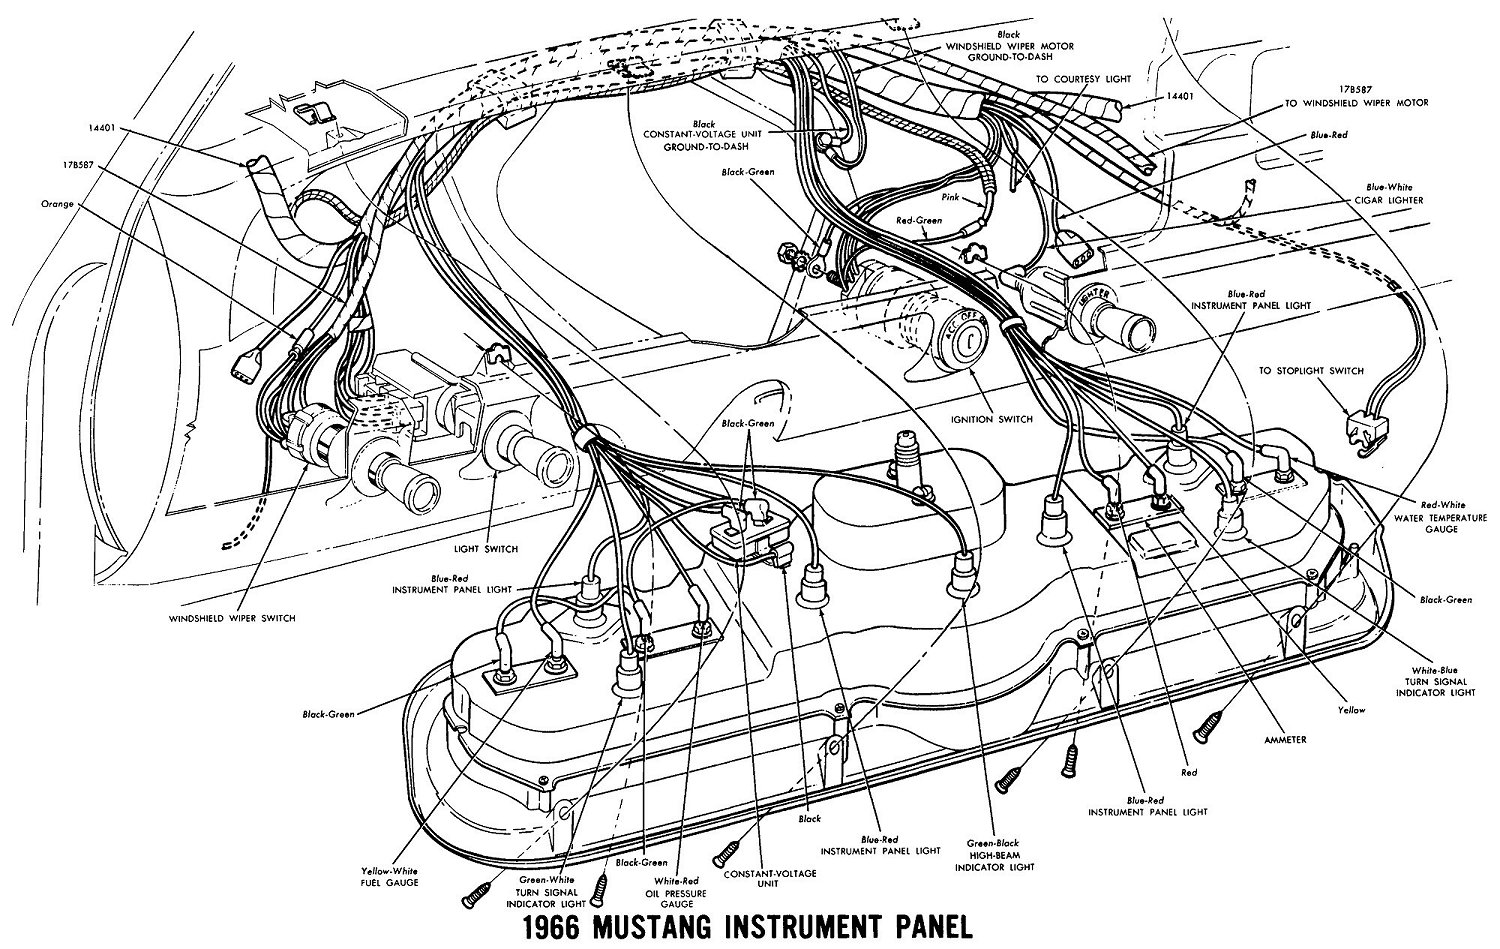 1966 Mustang Wiring Diagrams Average Joe Restoration Simple Ammeter Diagram Instrument Panel